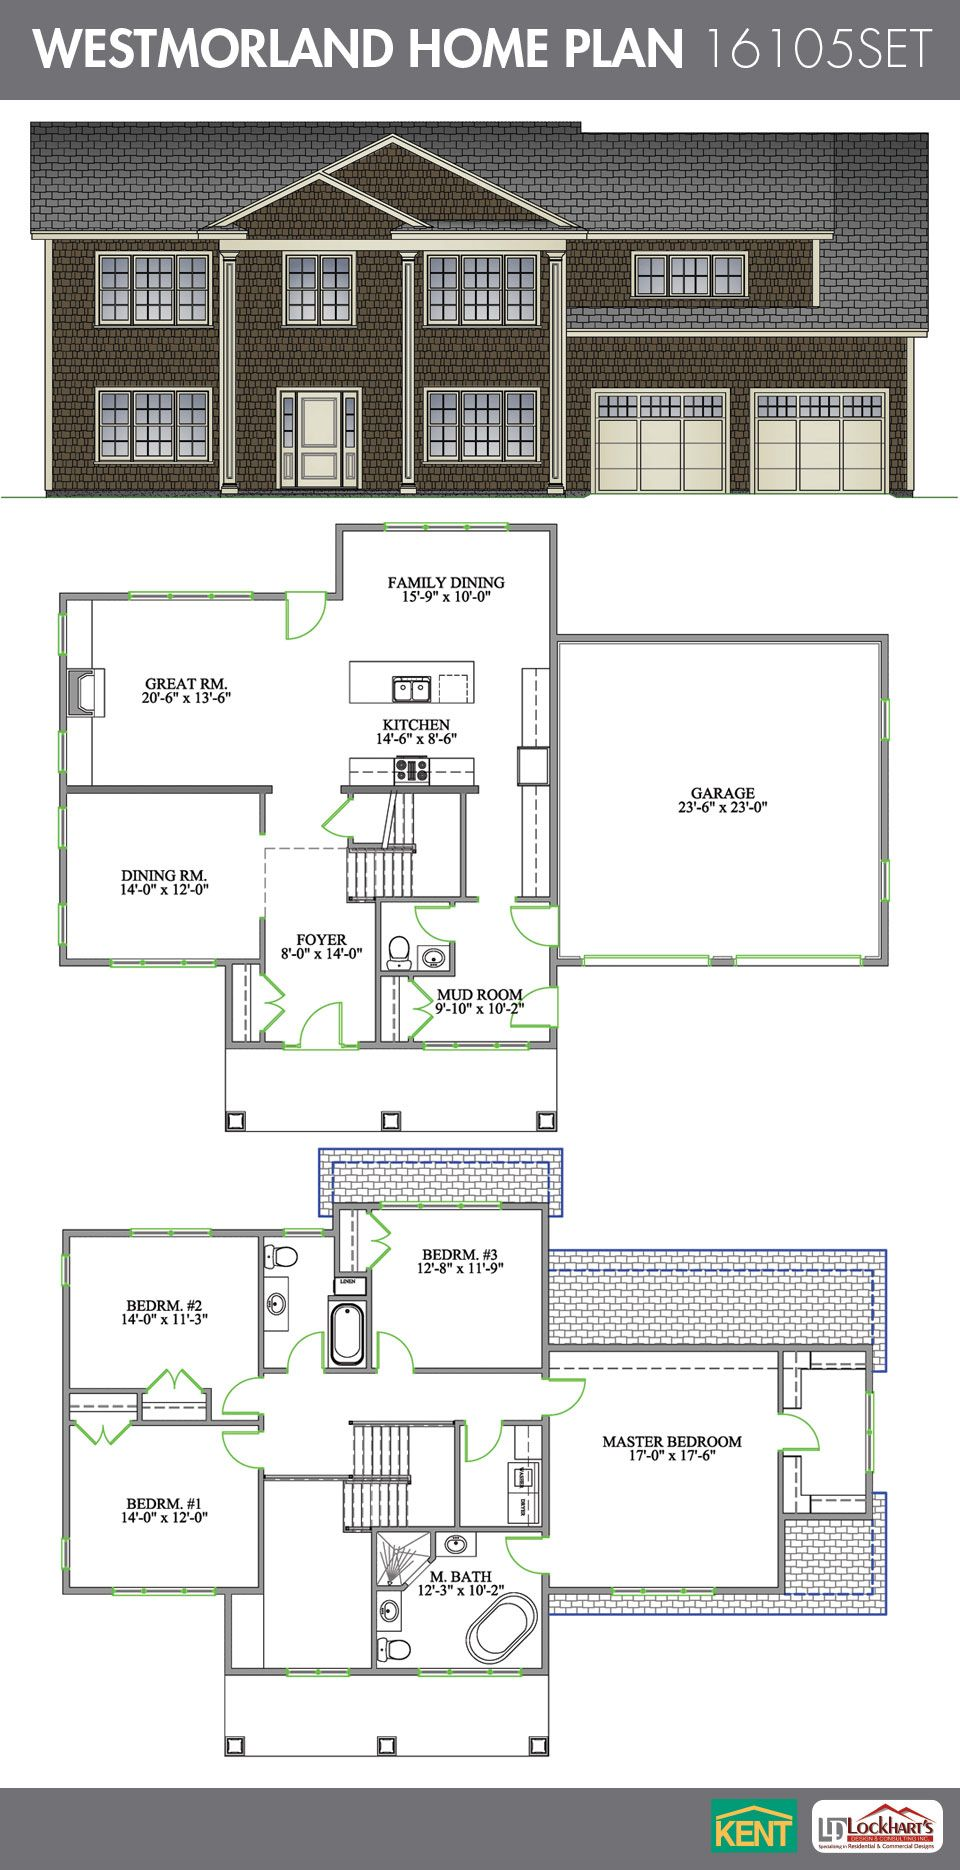 Westmorland 4 Bedroom 2 1 Bathroom Home Plan Features Open